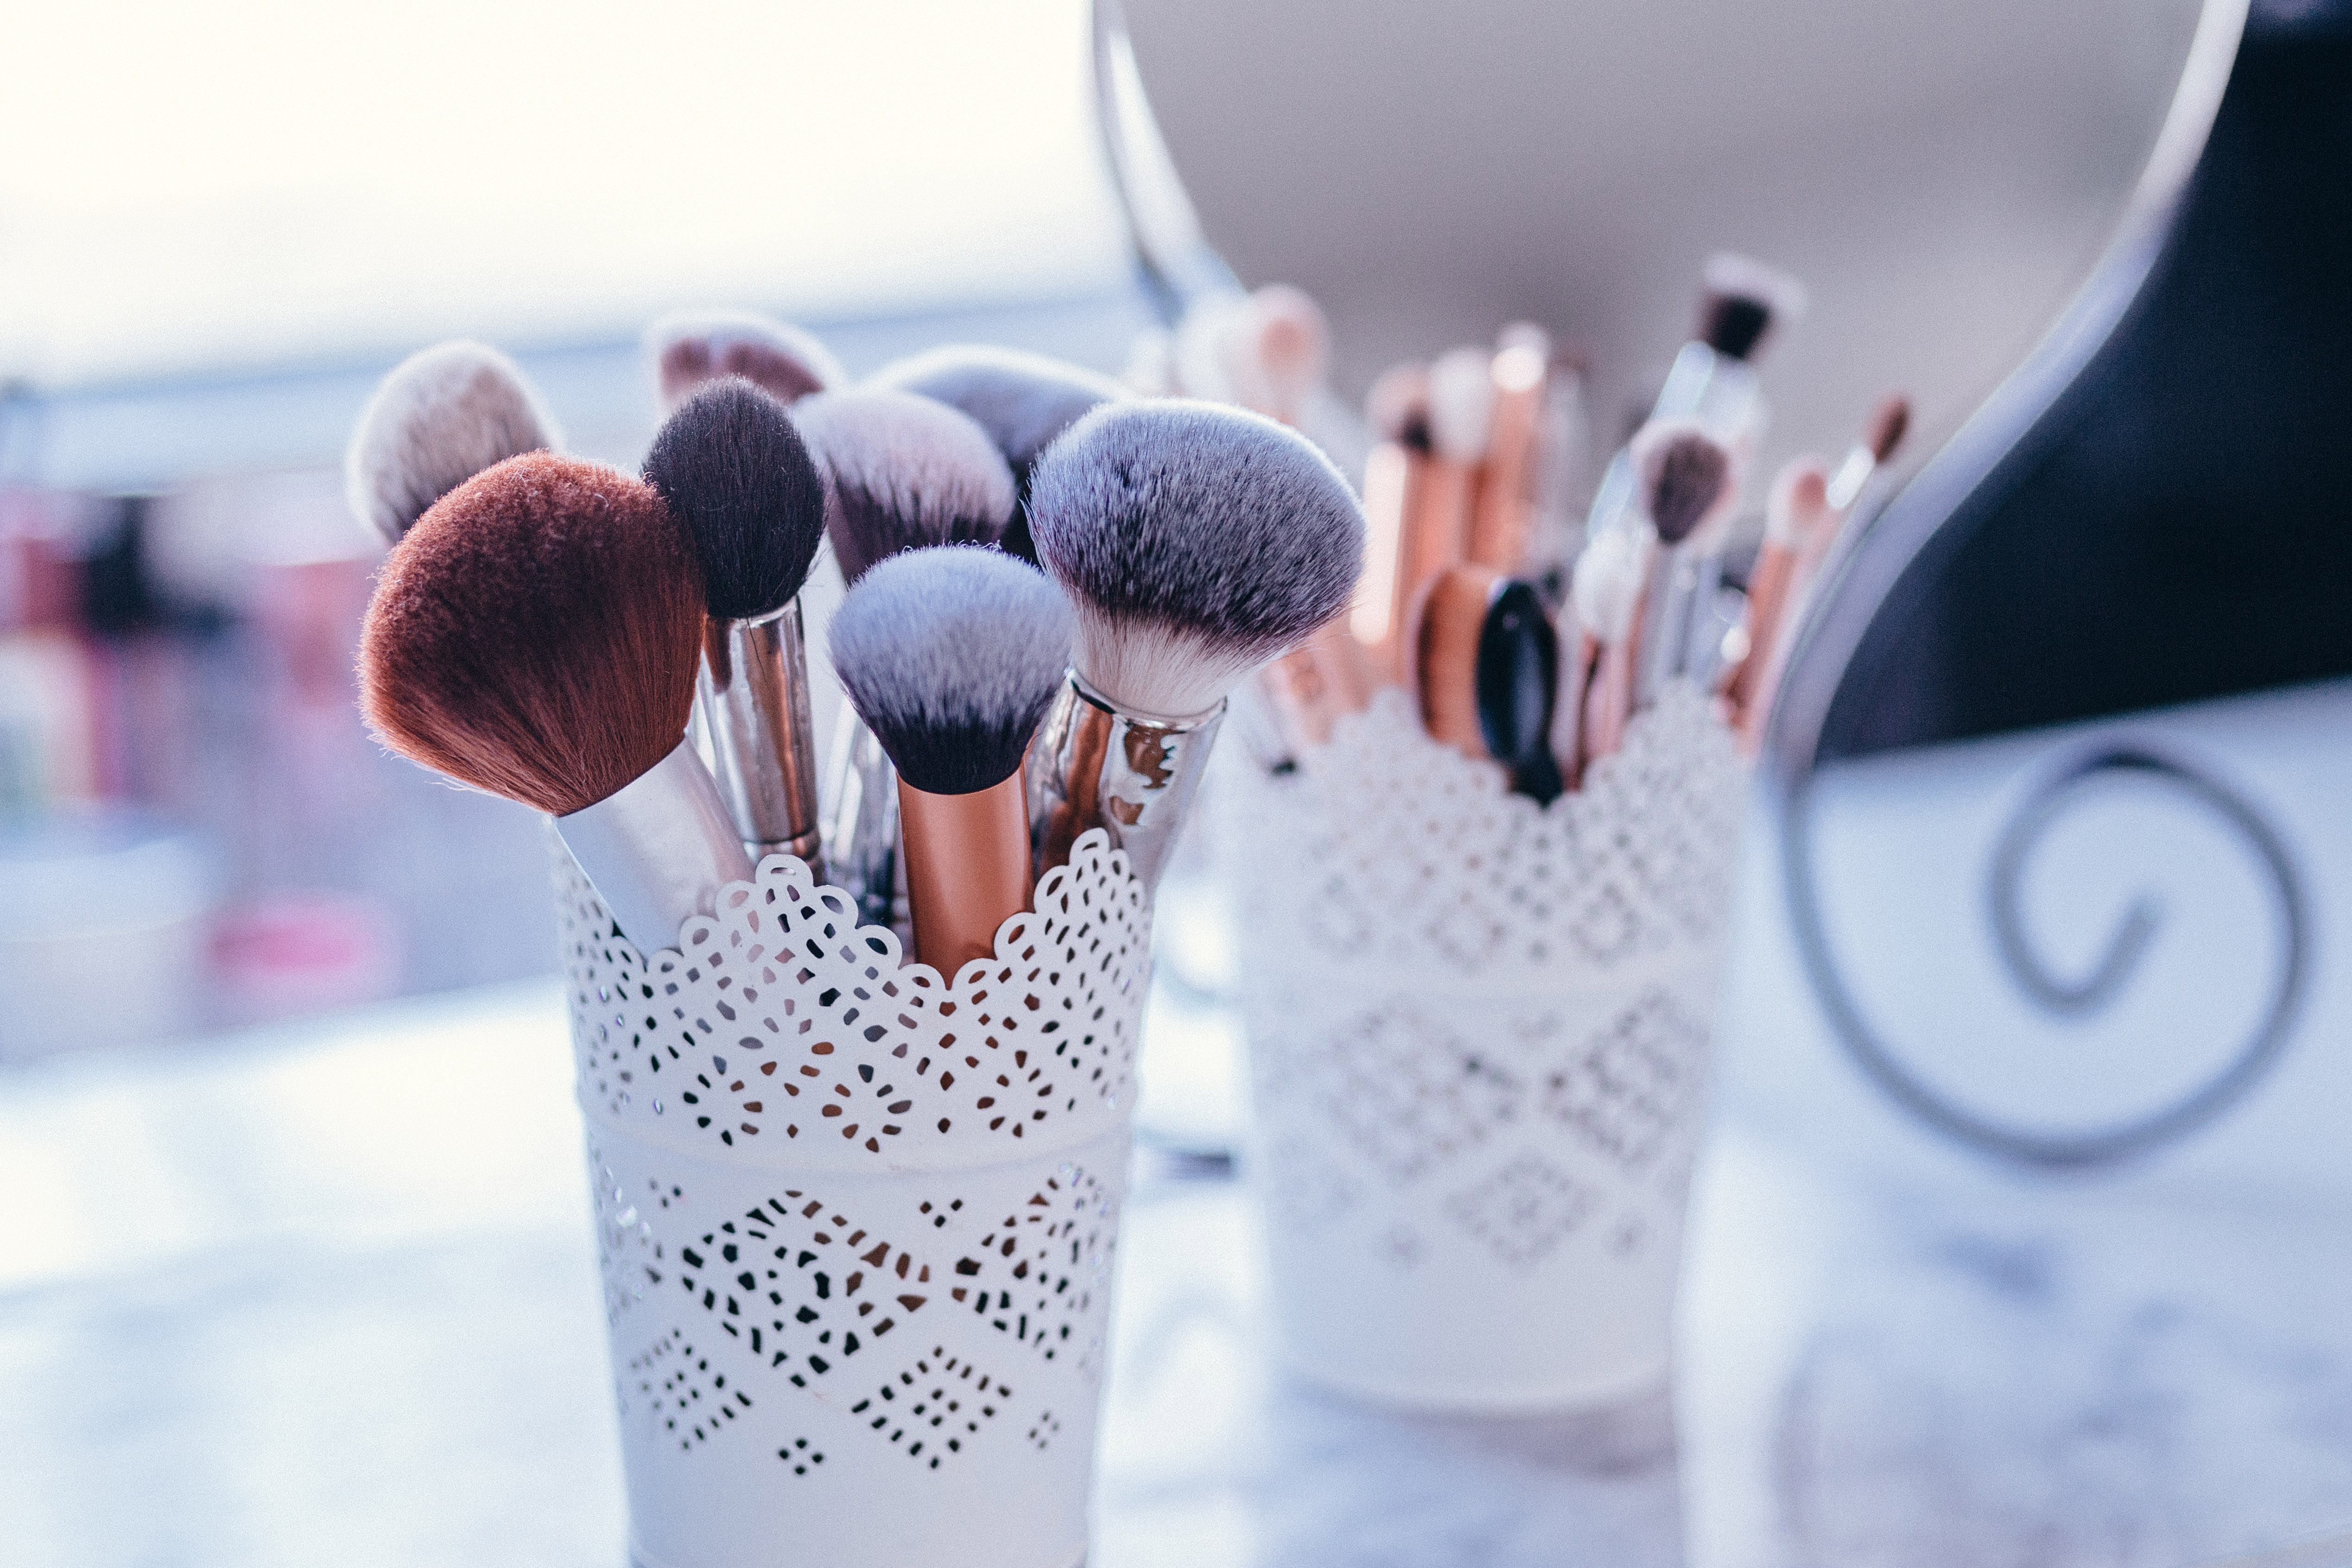 brushes-in-a-beauty-salon